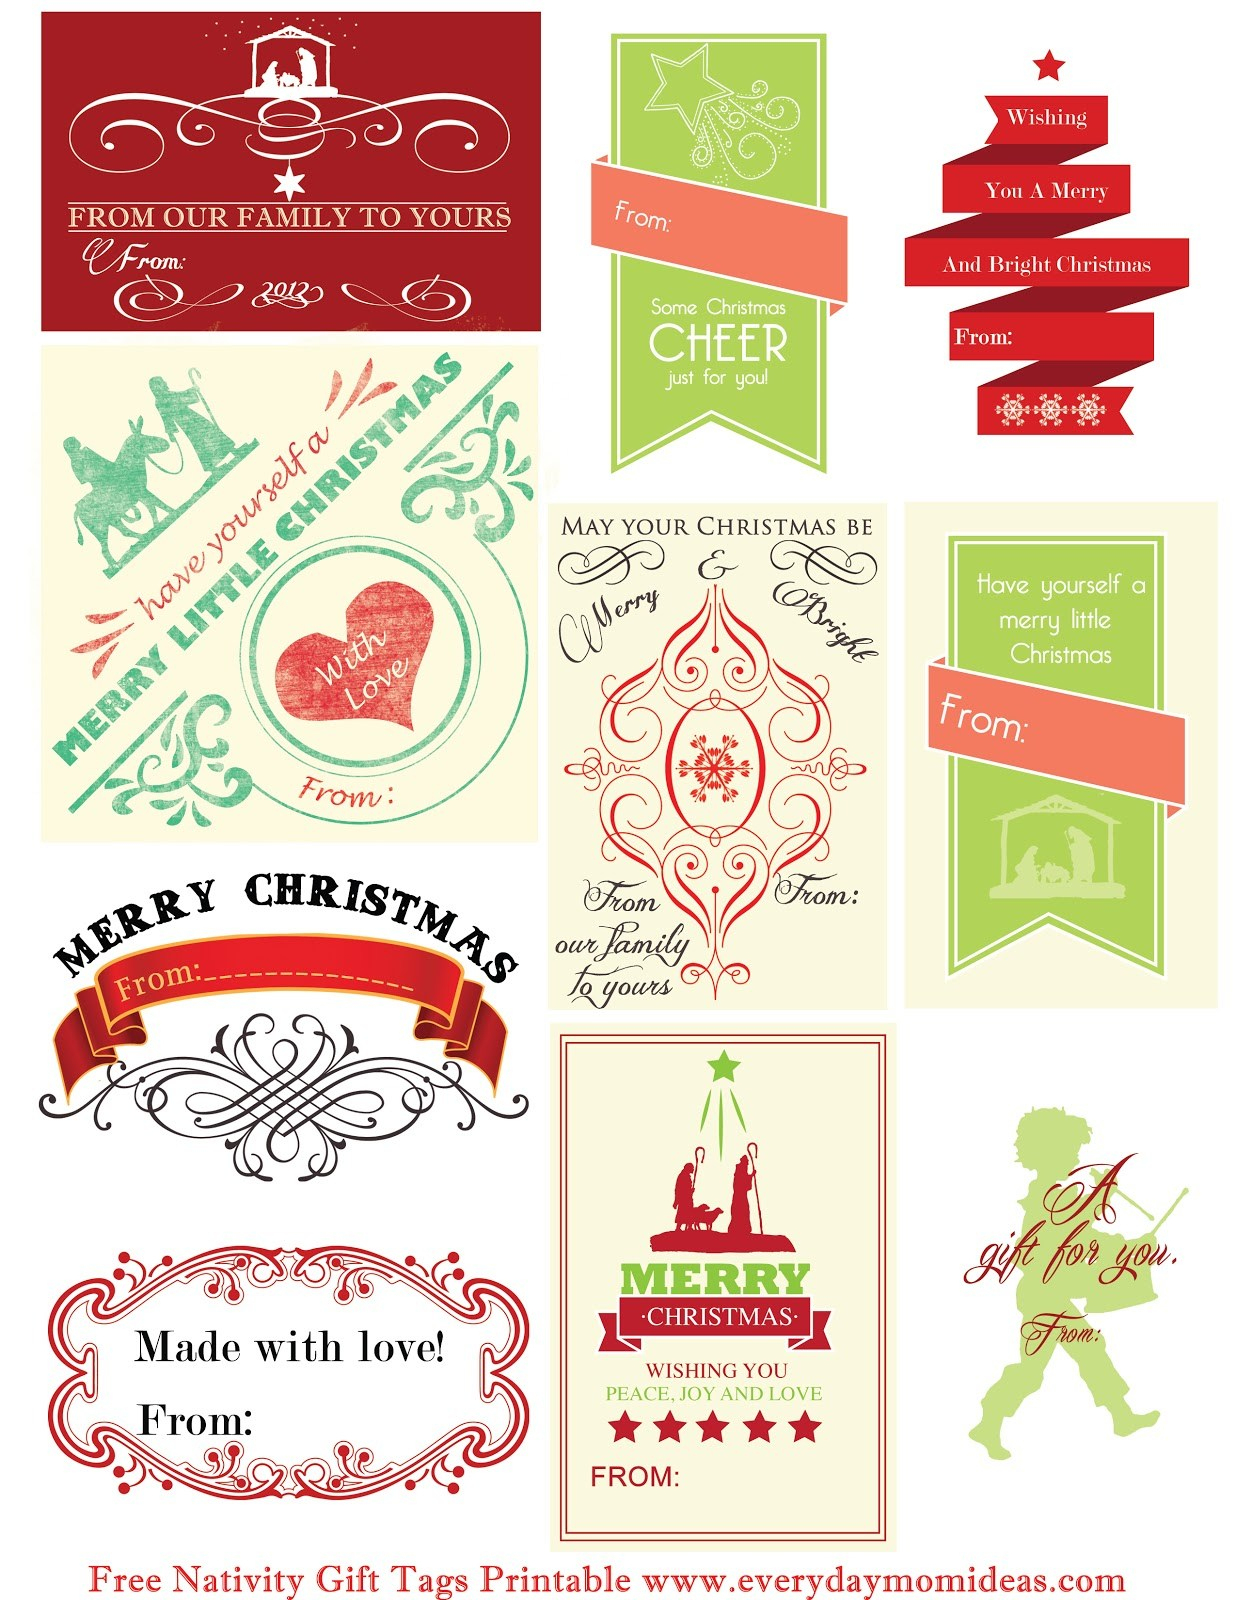 Free Printable Gift Tags Personalized – Forprint - Printable Gift Tags Customized Free